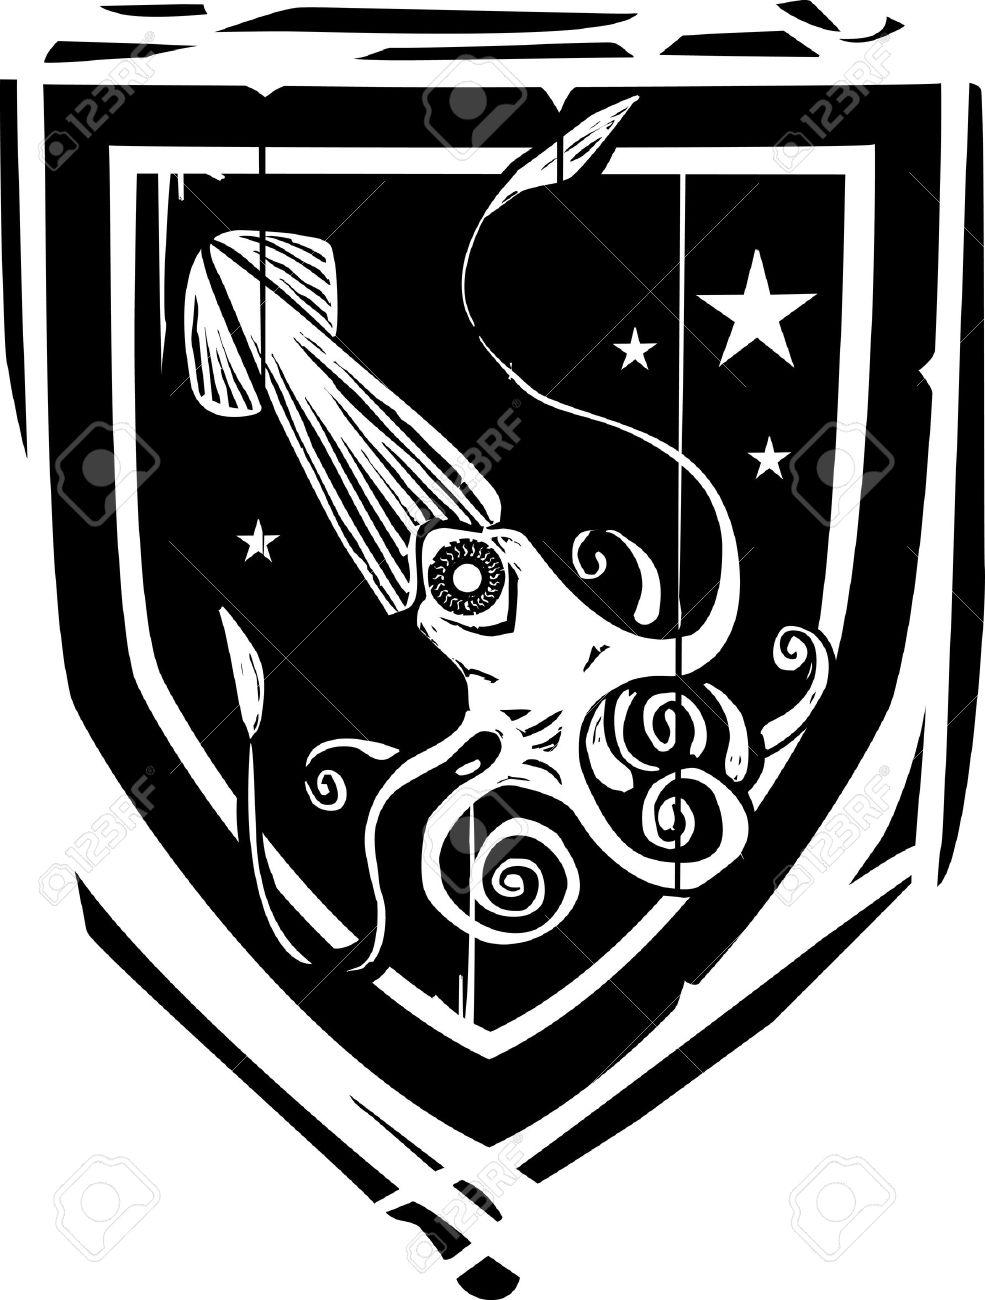 Woodcut Style Heraldic Shield With A Squid Or Kraken Royalty Free